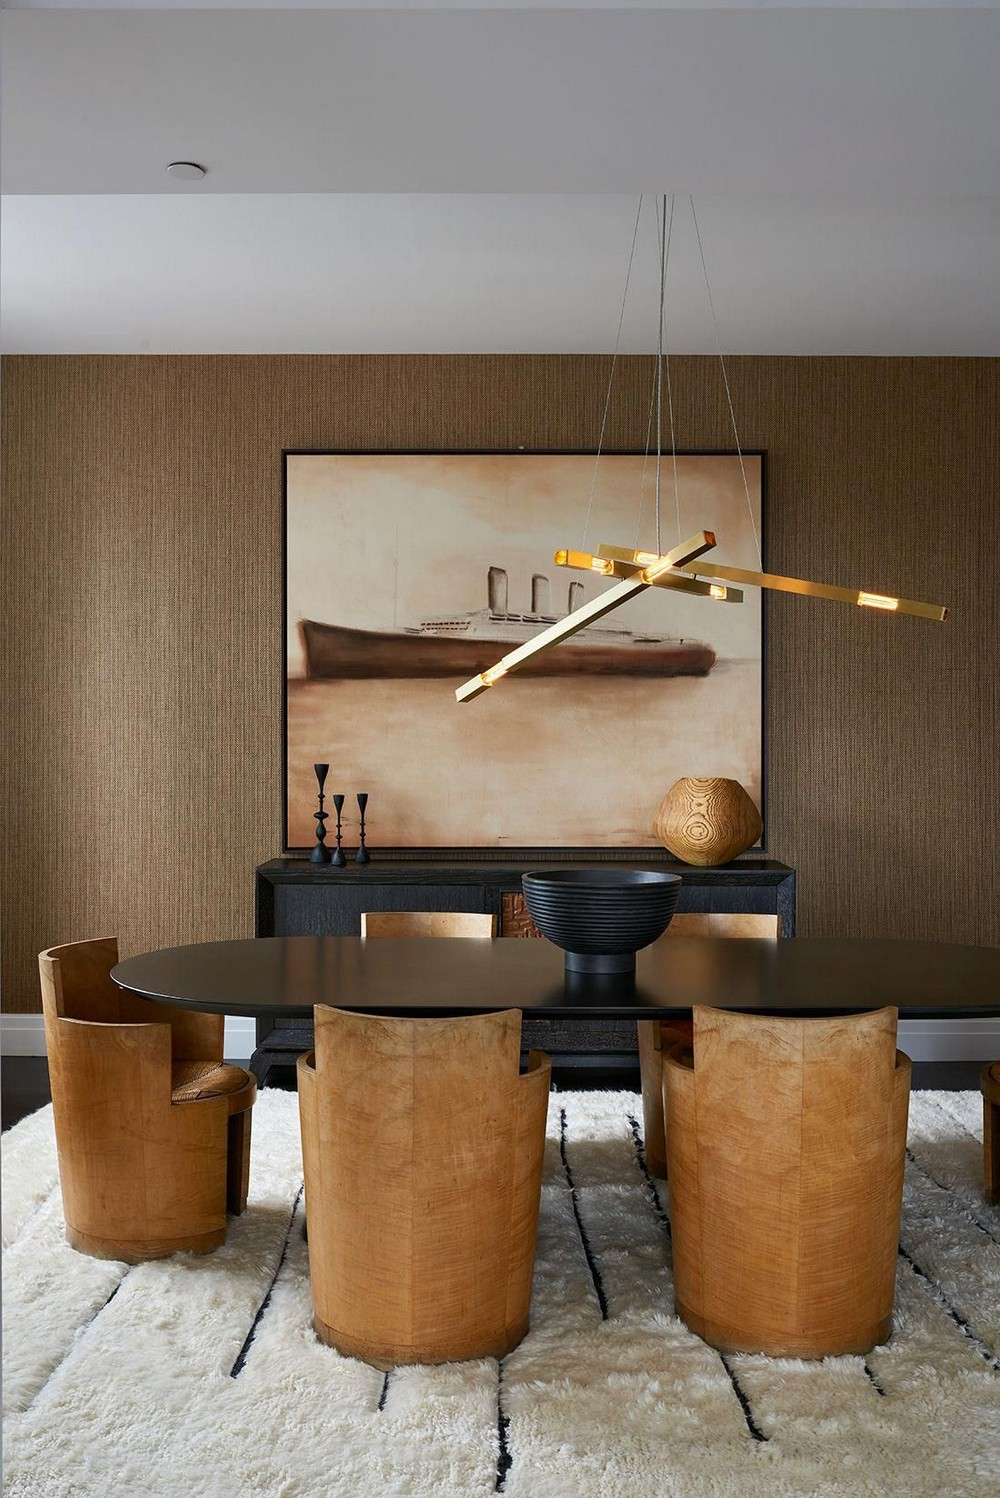 Relaxed, Sophisticated, Chic: Dining Rooms by Timothy Godbold timothy godbold Relaxed, Sophisticated, Chic: Dining Rooms by Timothy Godbold 3 pinterest